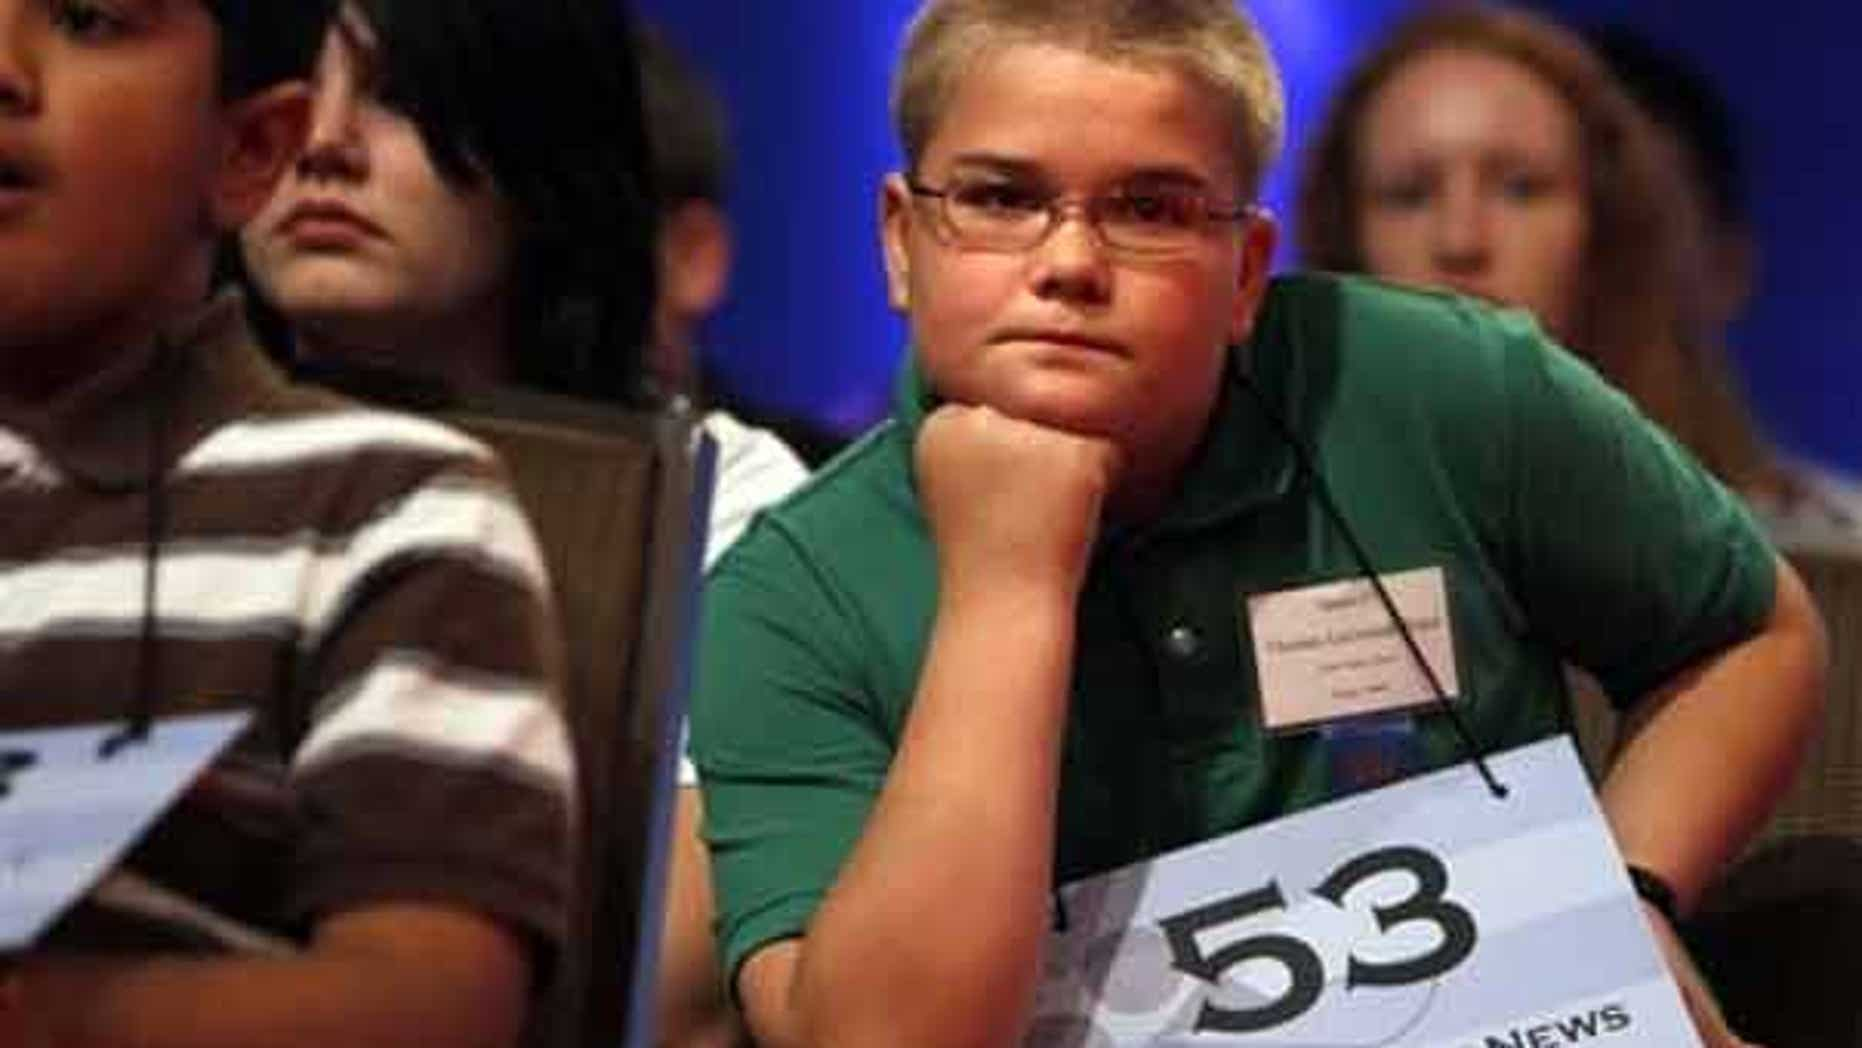 June 3: Thomas Bates, 11, of Driggs, Idaho, looks determined at the start of competition at the 2010 Scripps National Spelling Bee in Washington.